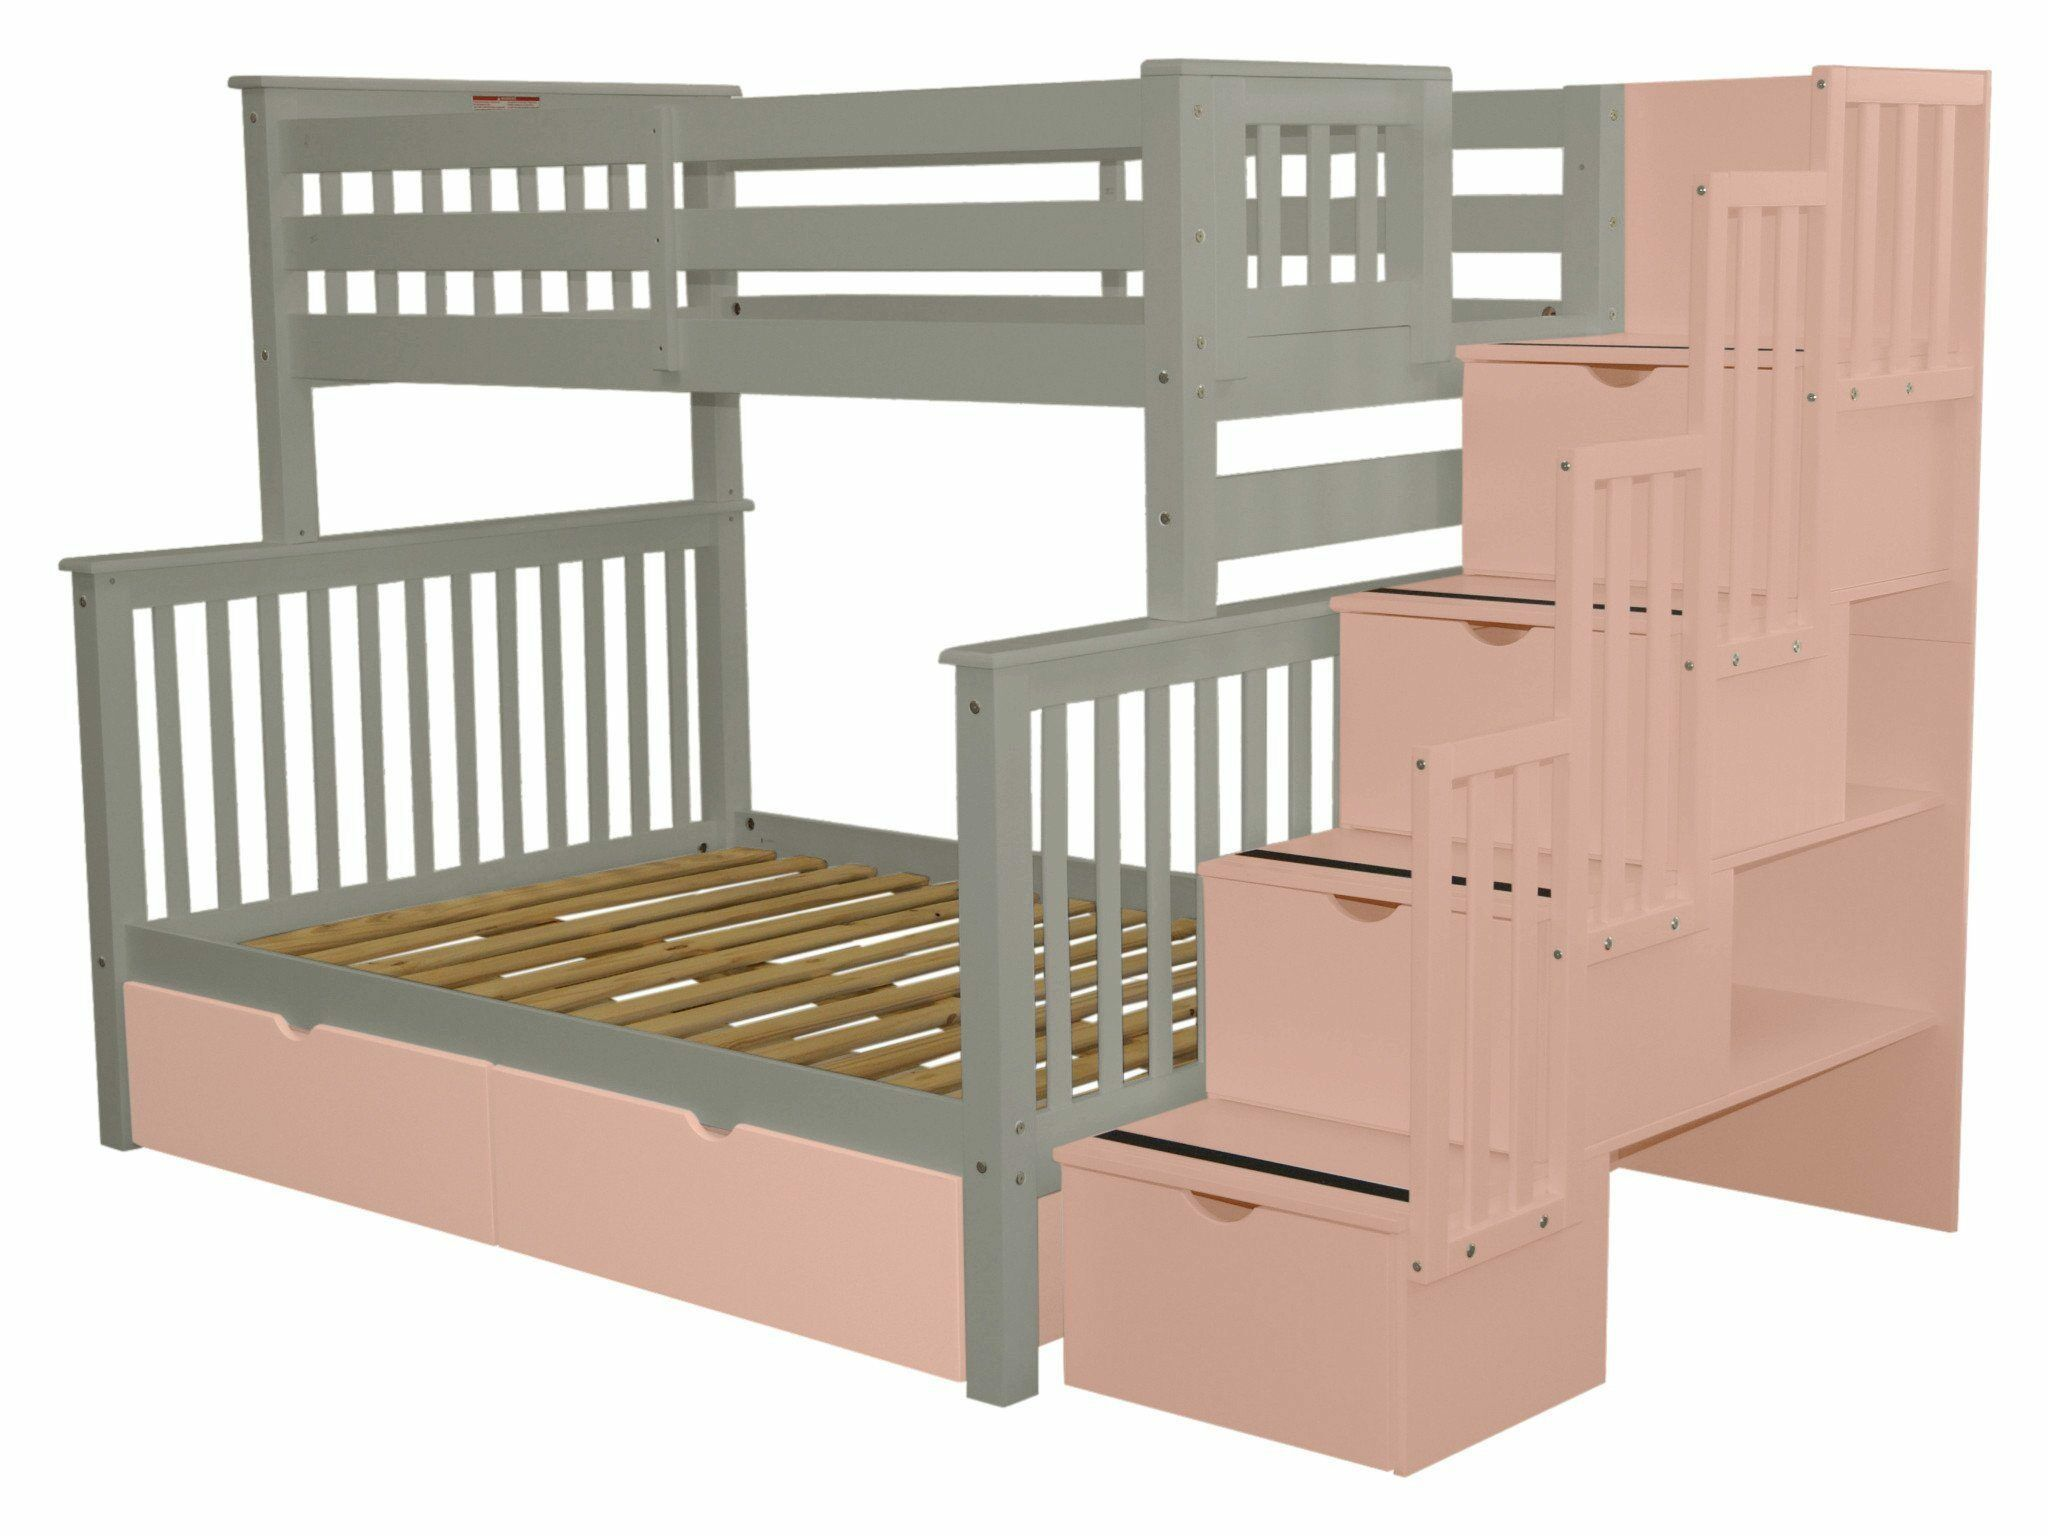 Stairway Storage Drawer Bunk Bed Bed Frame Color: Gray/Pink